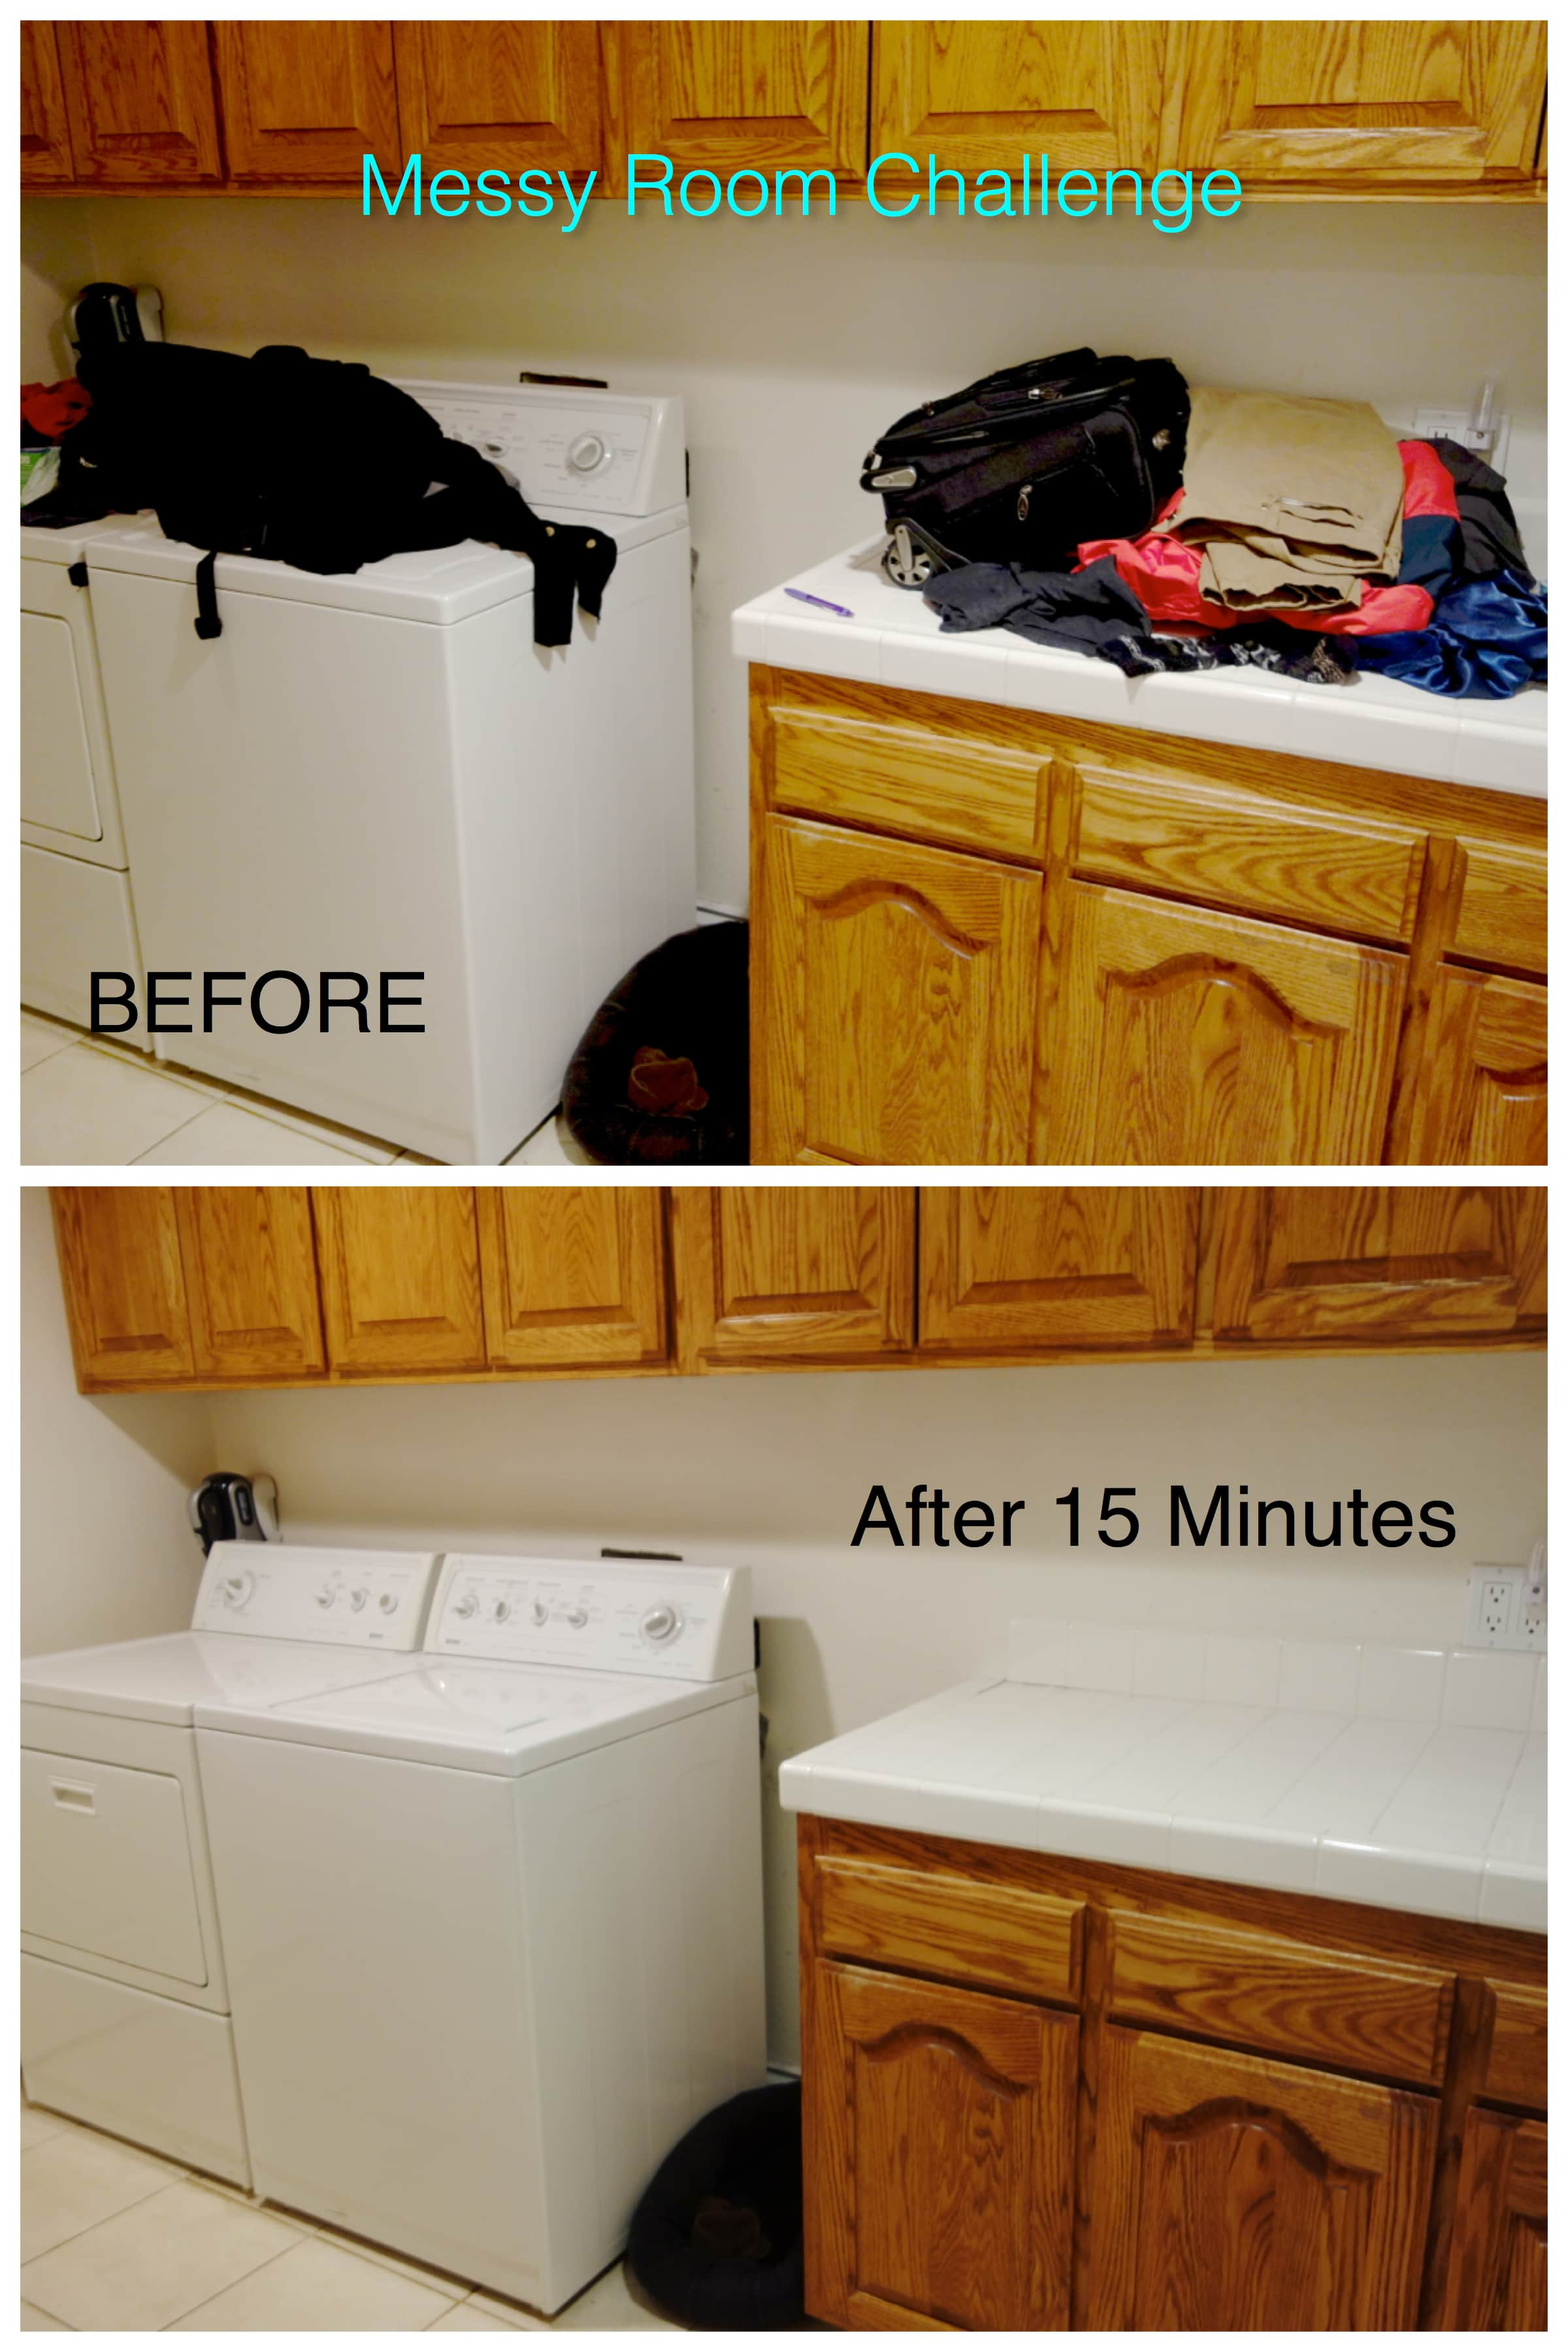 Messy Laundry Room Challenge Before and After Photos